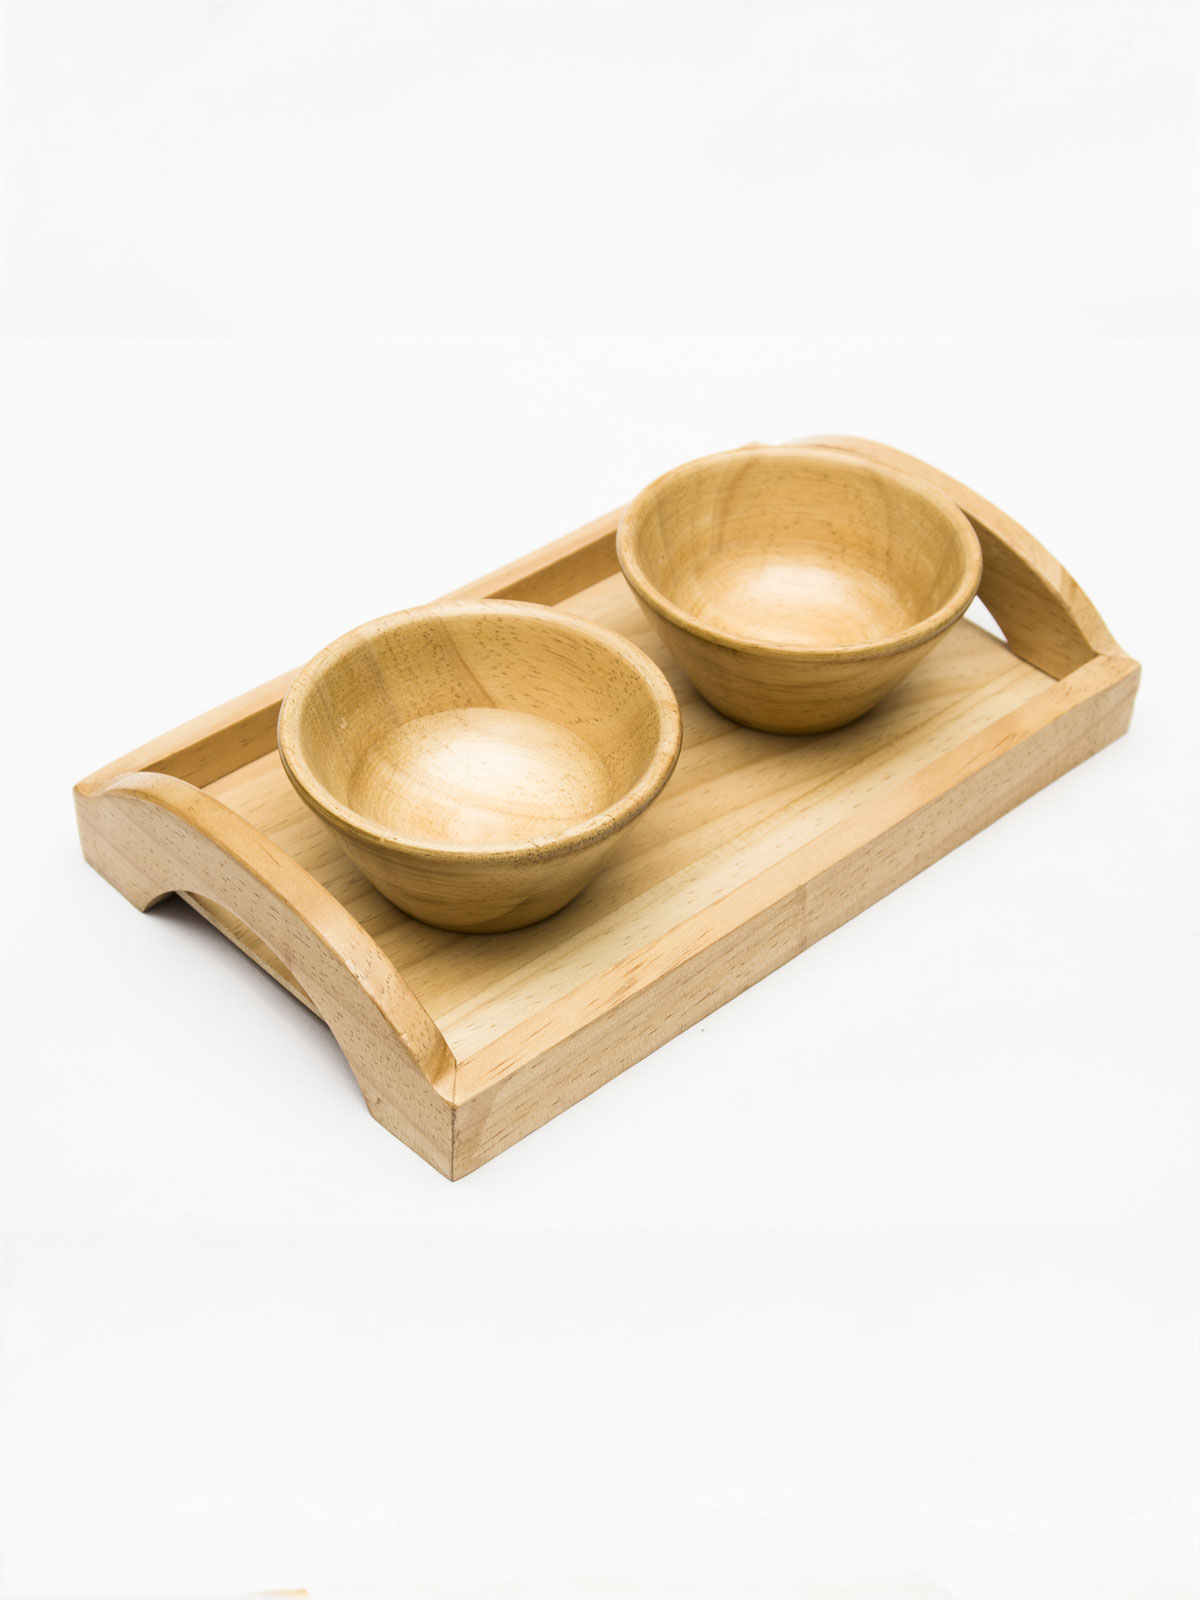 Tray with bowls.